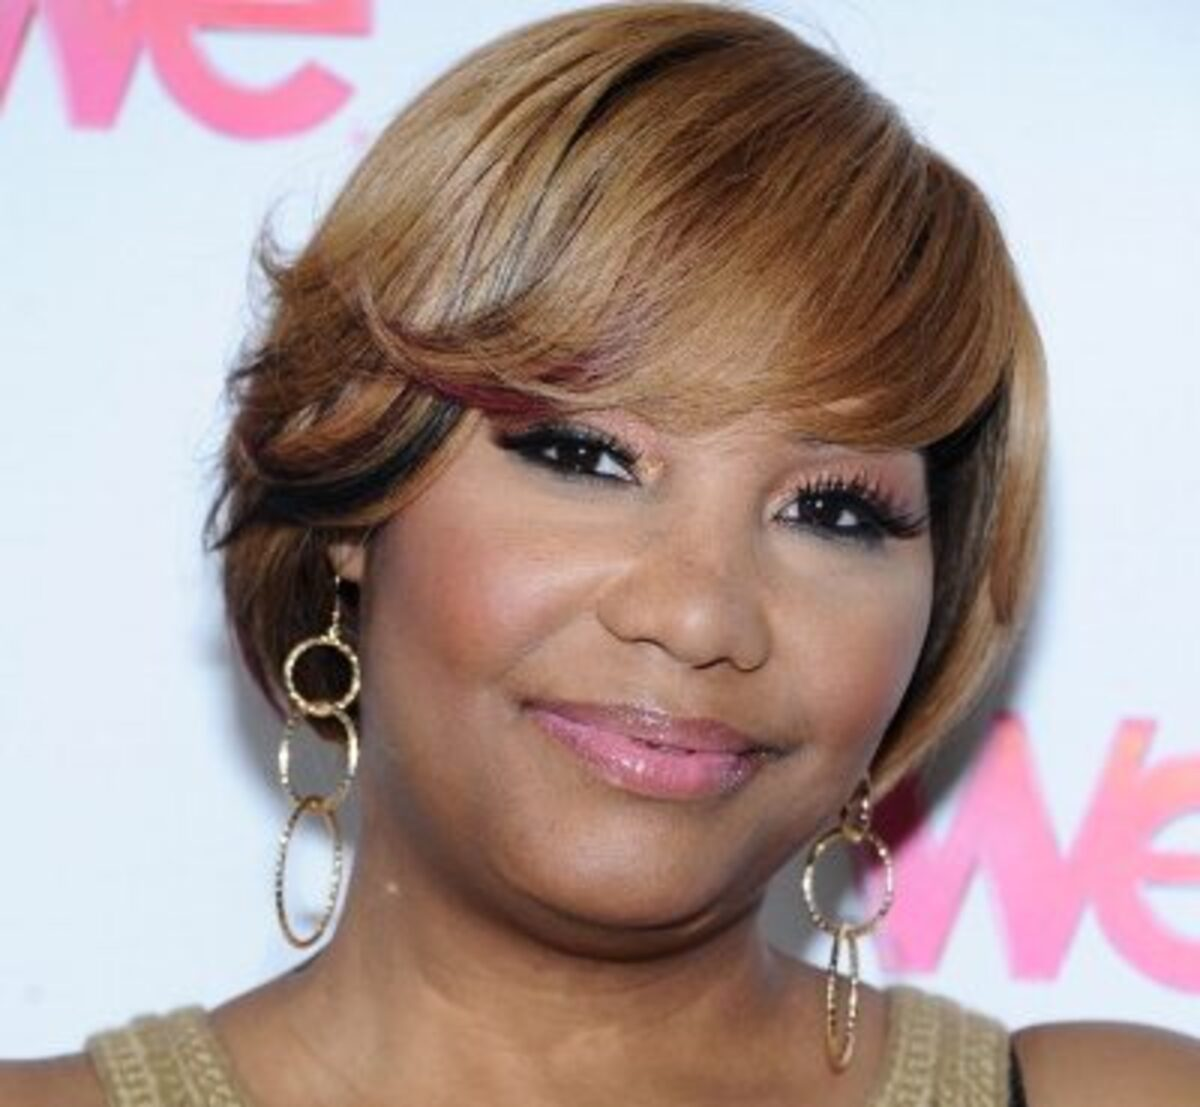 Traci Braxton's Photos For The National Daughter Day Make Fans Emotional